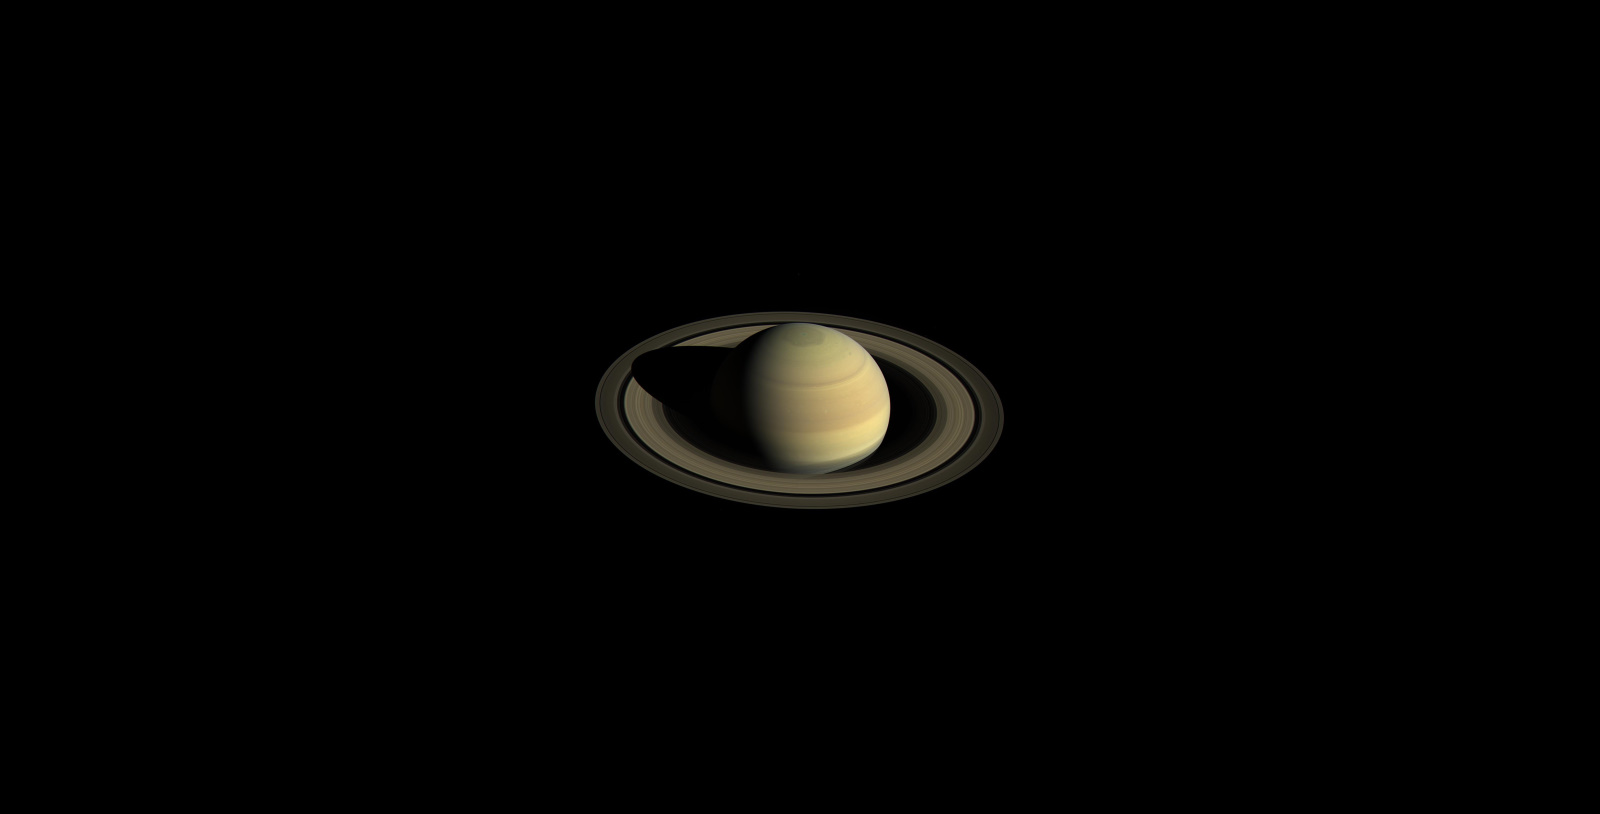 Saturn via Cassini Orbiter © NASA/JPL-Caltech/Space Science Institute/PIA21046